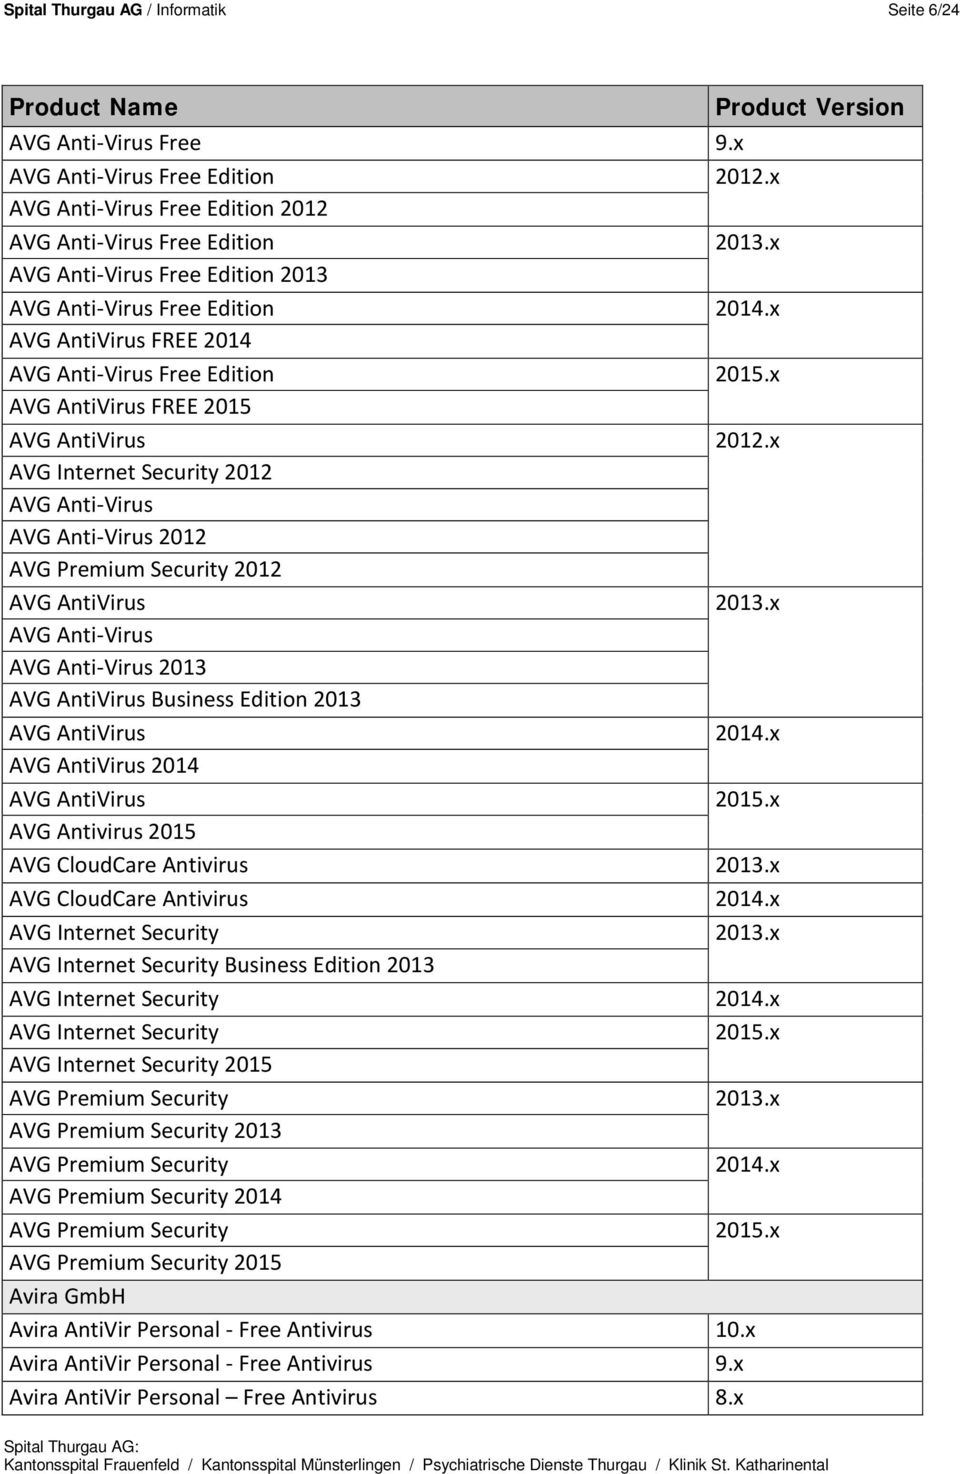 x AVG Internet Security 2012 AVG Anti-Virus AVG Anti-Virus 2012 AVG Premium Security 2012 AVG AntiVirus 2013.